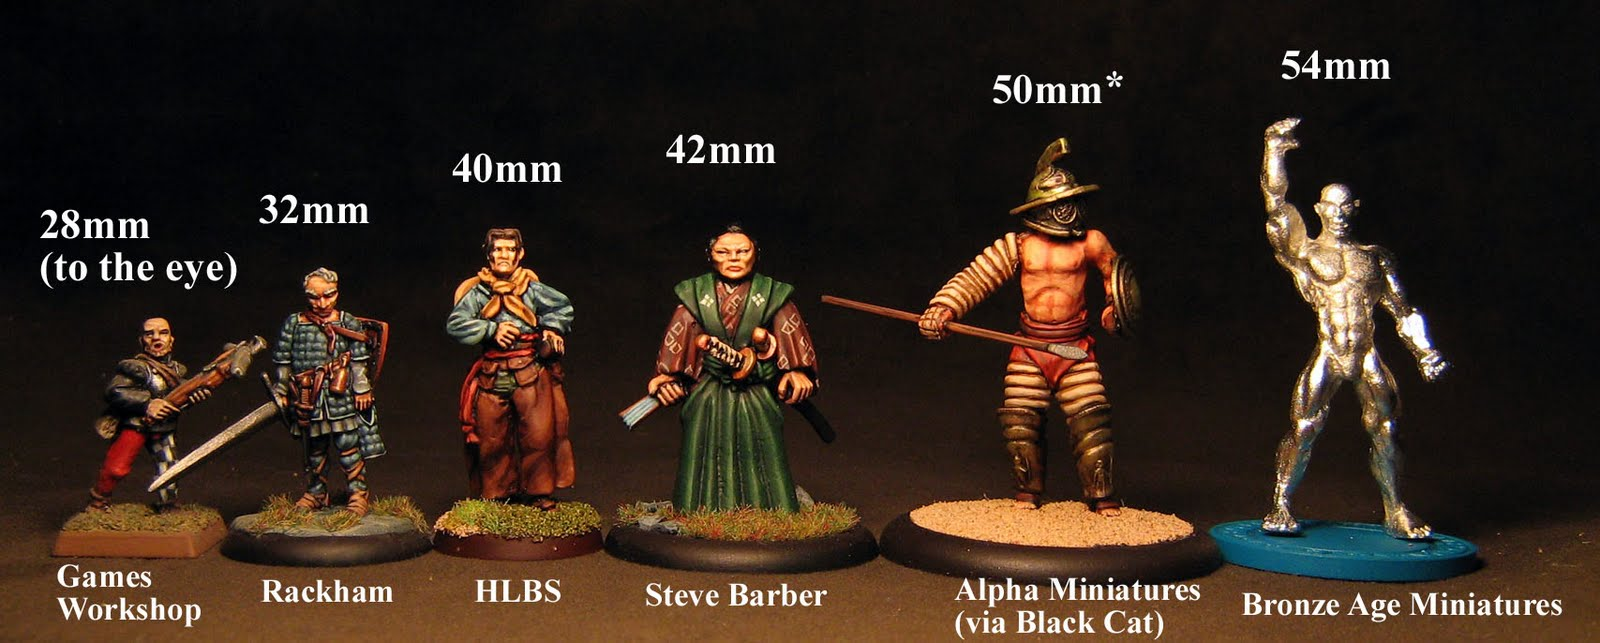 Miniatures Miniature Scale